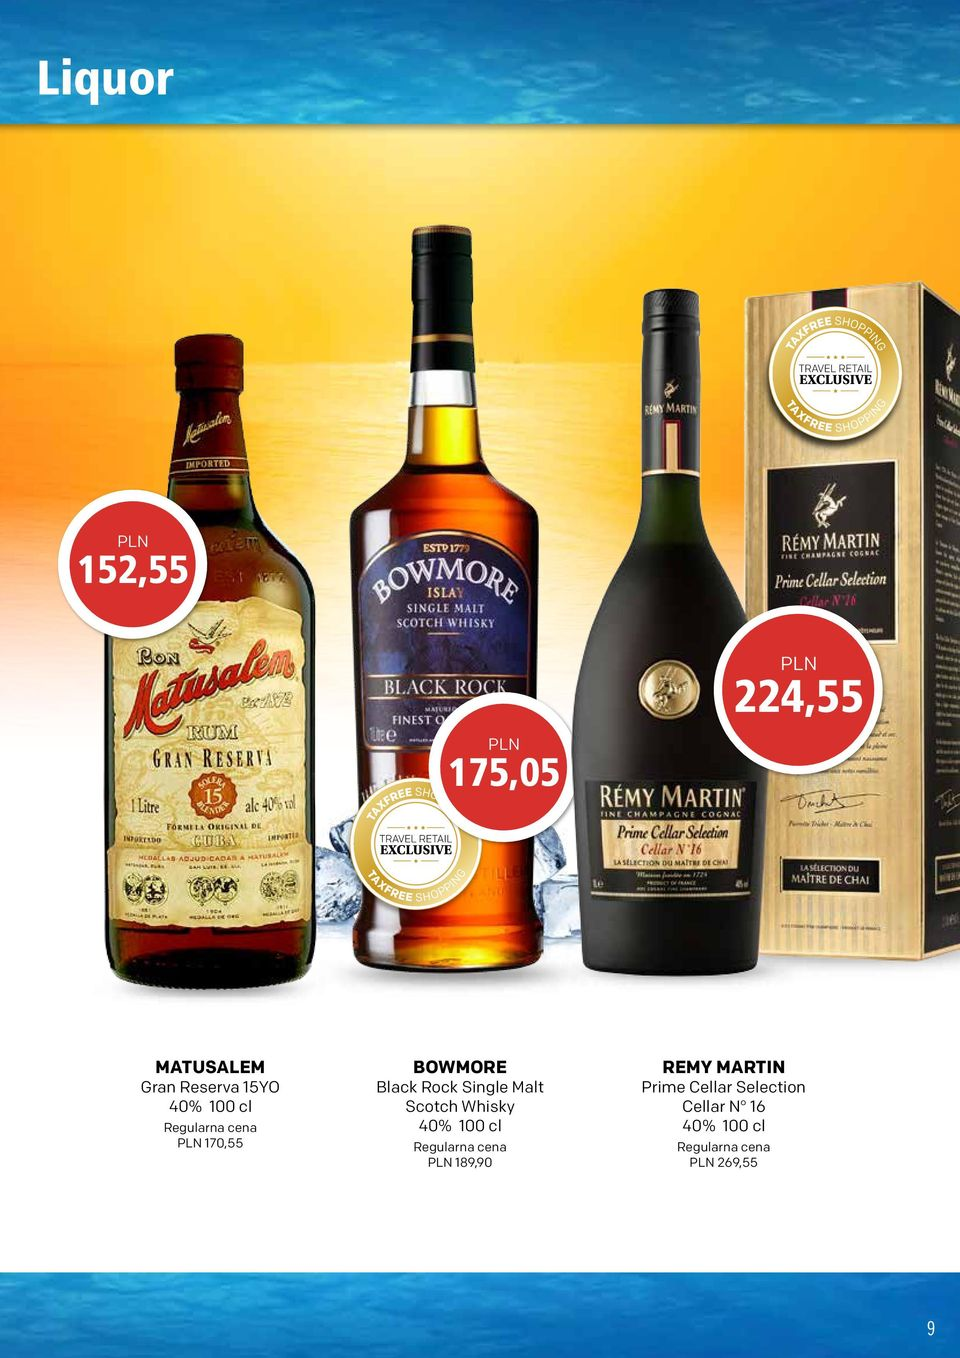 Single Malt Scotch Whisky 189,90 REMY